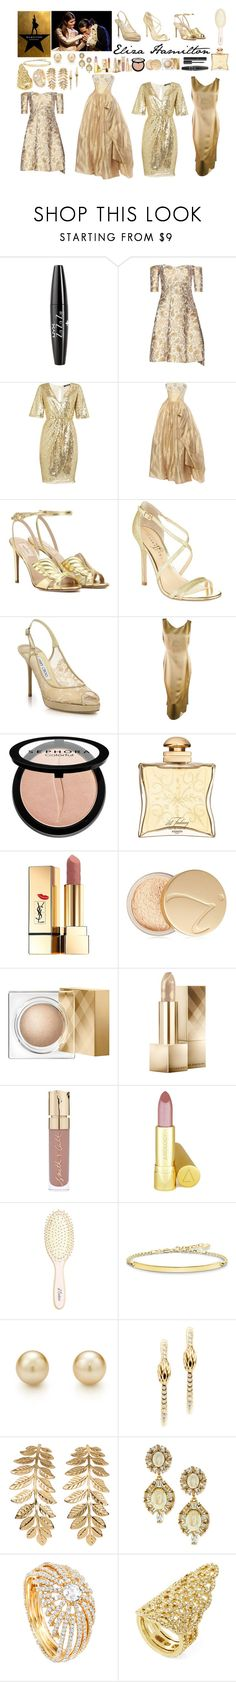 """Eliza Hamilton"" by ellelovesfashion07 ❤ liked on Polyvore featuring NYX, STELLA McCARTNEY, TFNC, Valentino, Ivanka Trump, Jimmy Choo, Richard Tyler, Chanel, Sephora Collection and Hermès"